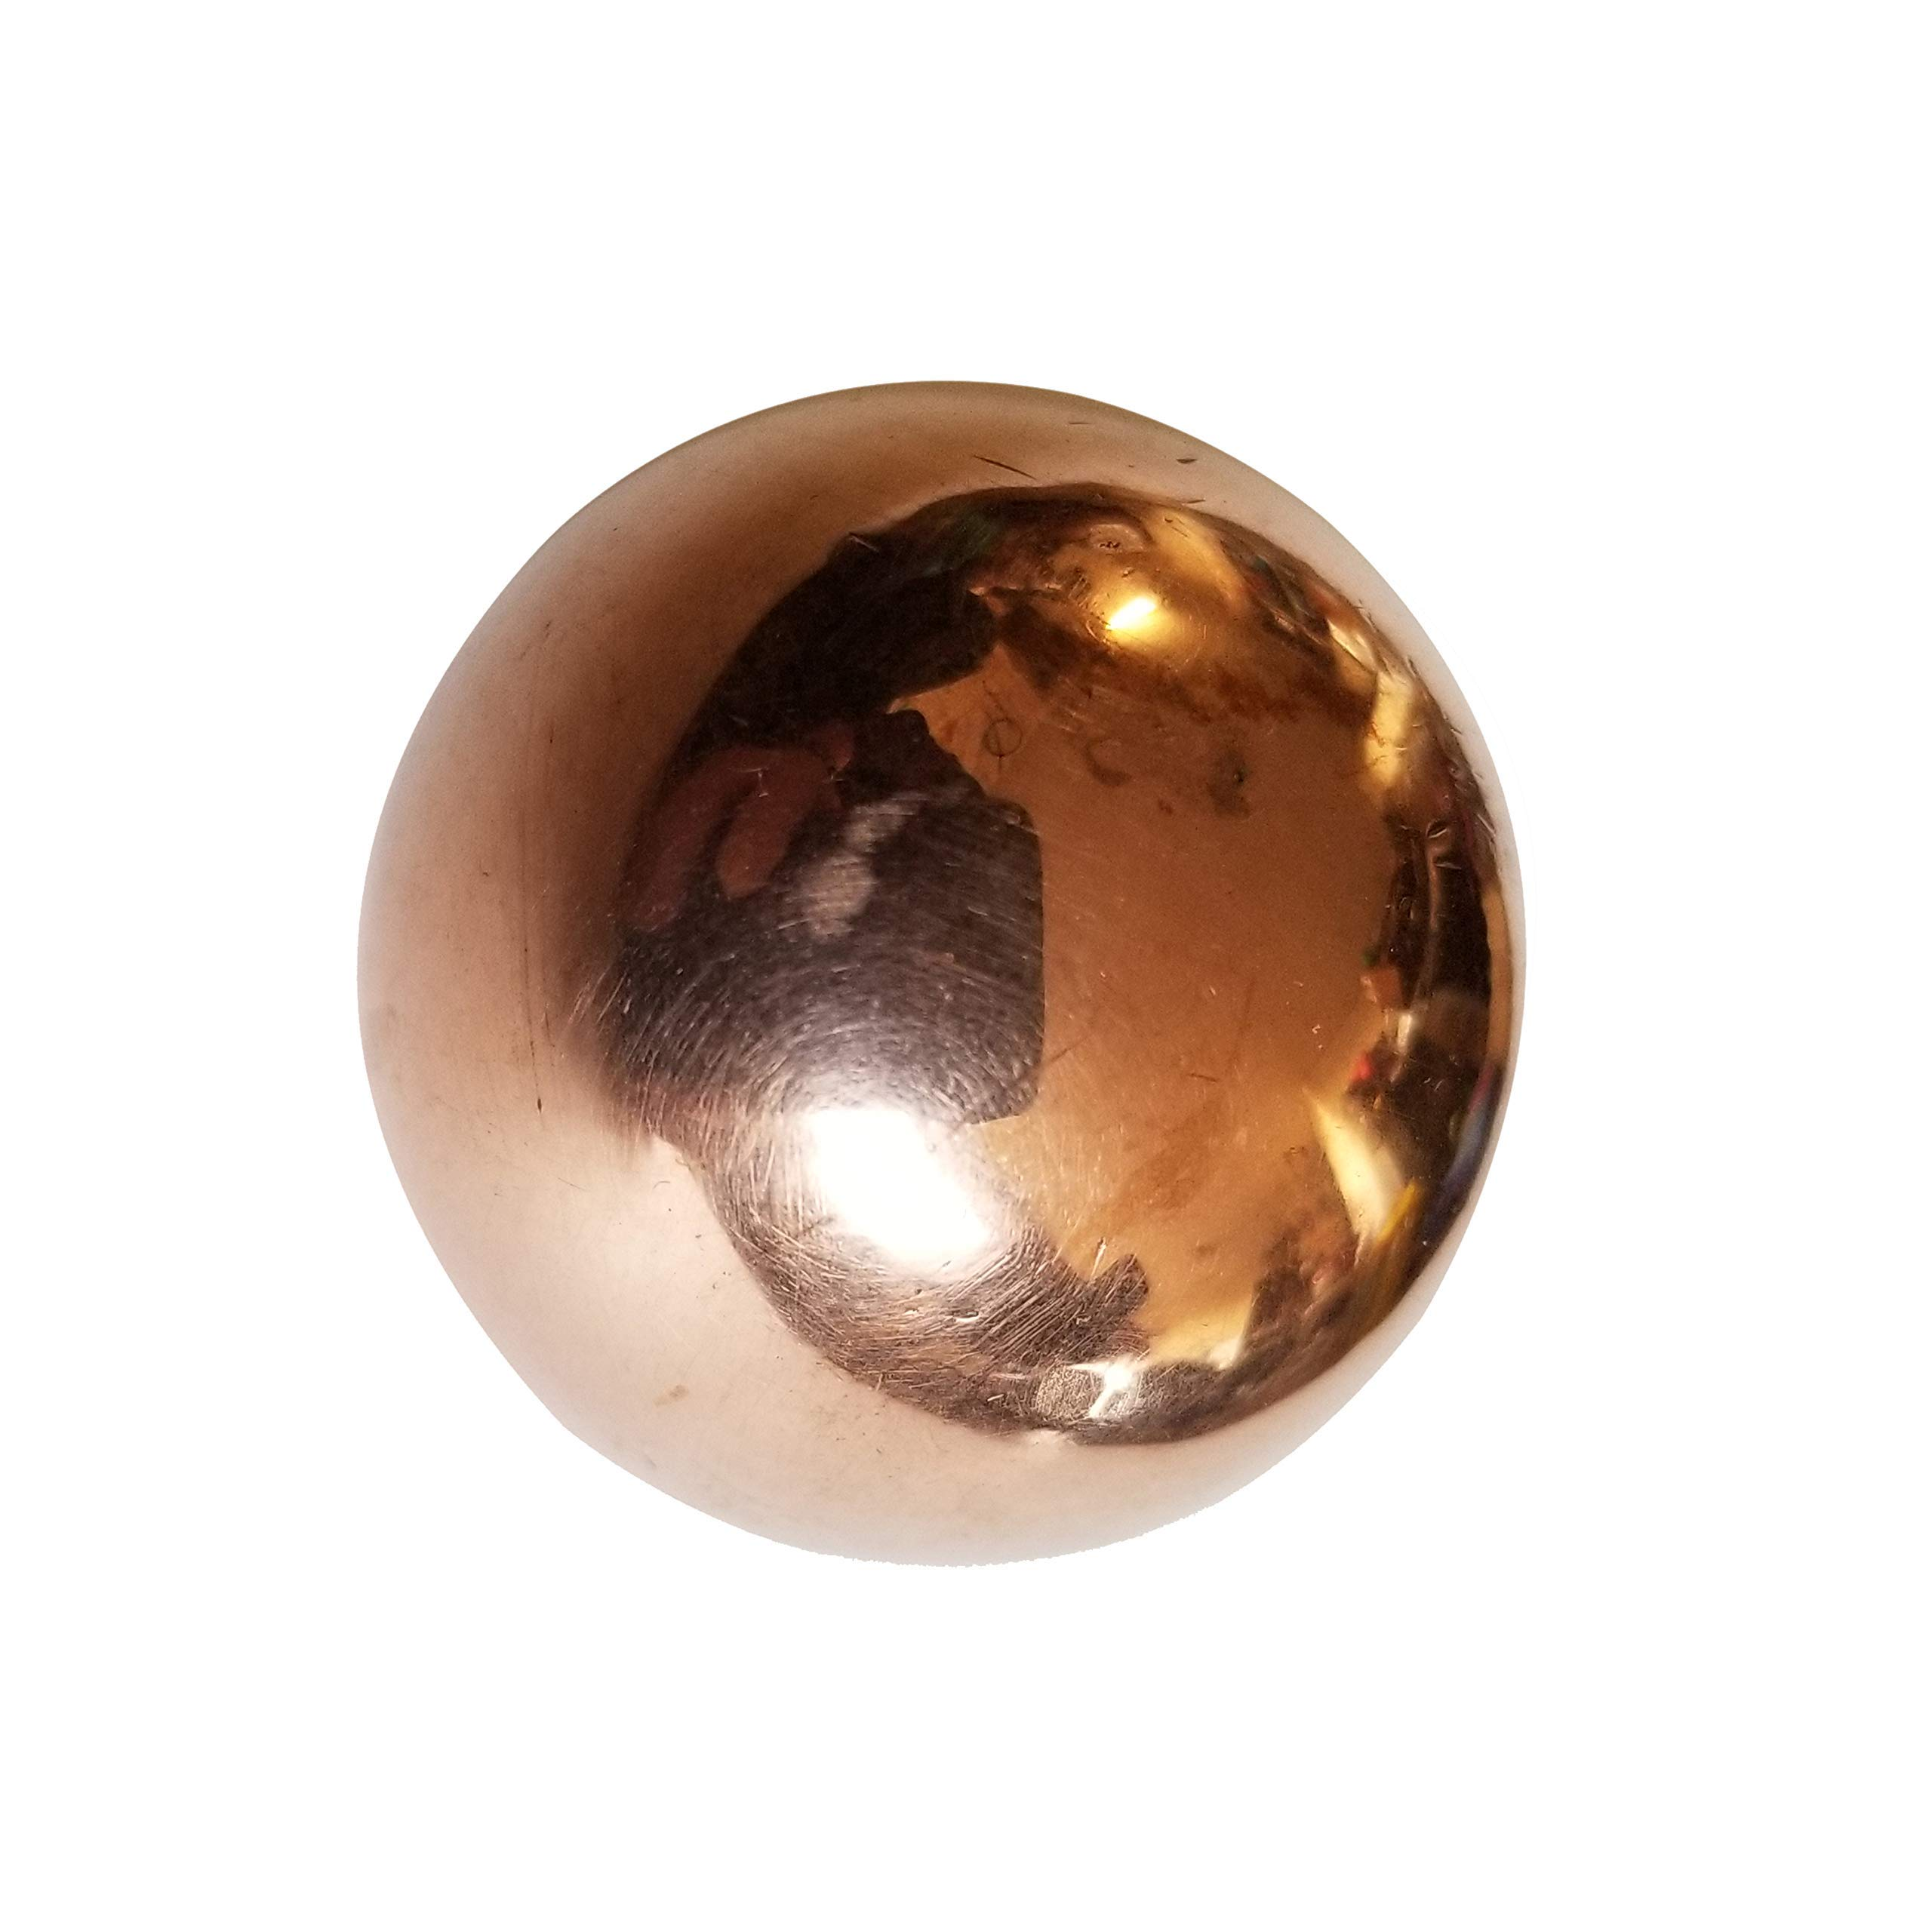 Premium Native Pure Solid Copper Ball Approx 38mm 1.5 inch Diameter Healing Energy Orb Sphere Mineral, Mental Agility, Grounding, Eurythymy, Movement Therapy